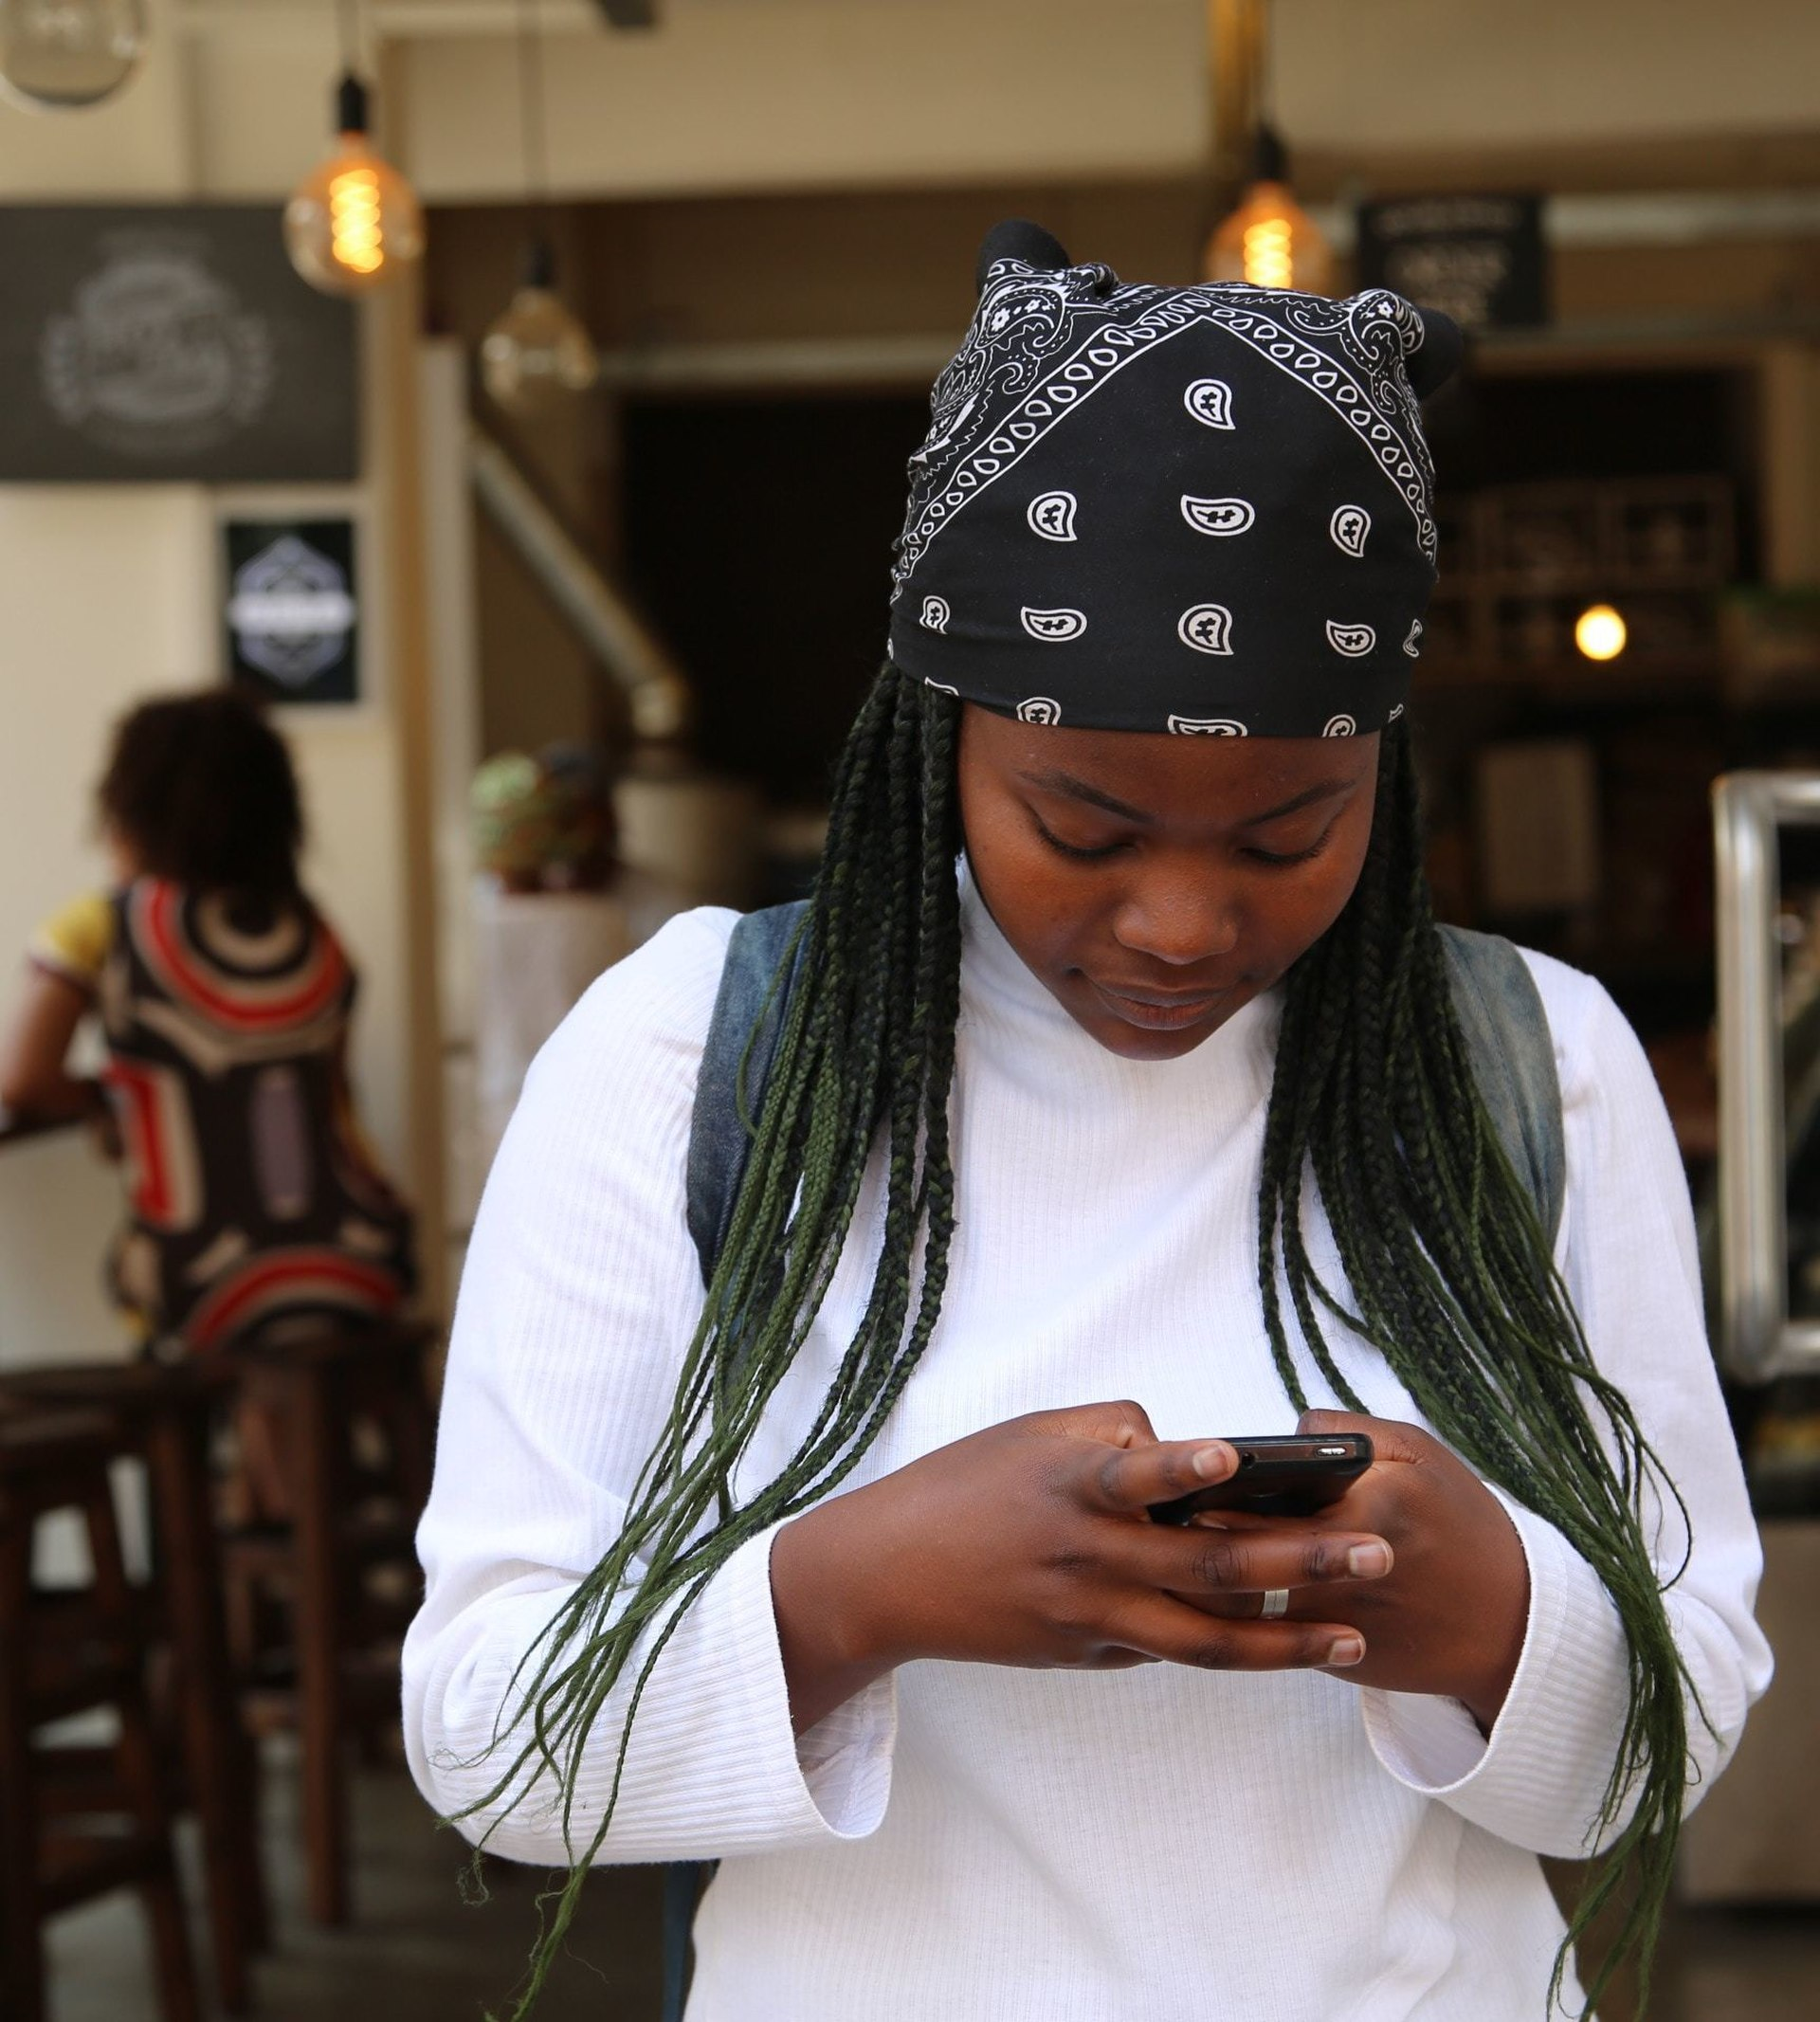 girl holding phone at cafe